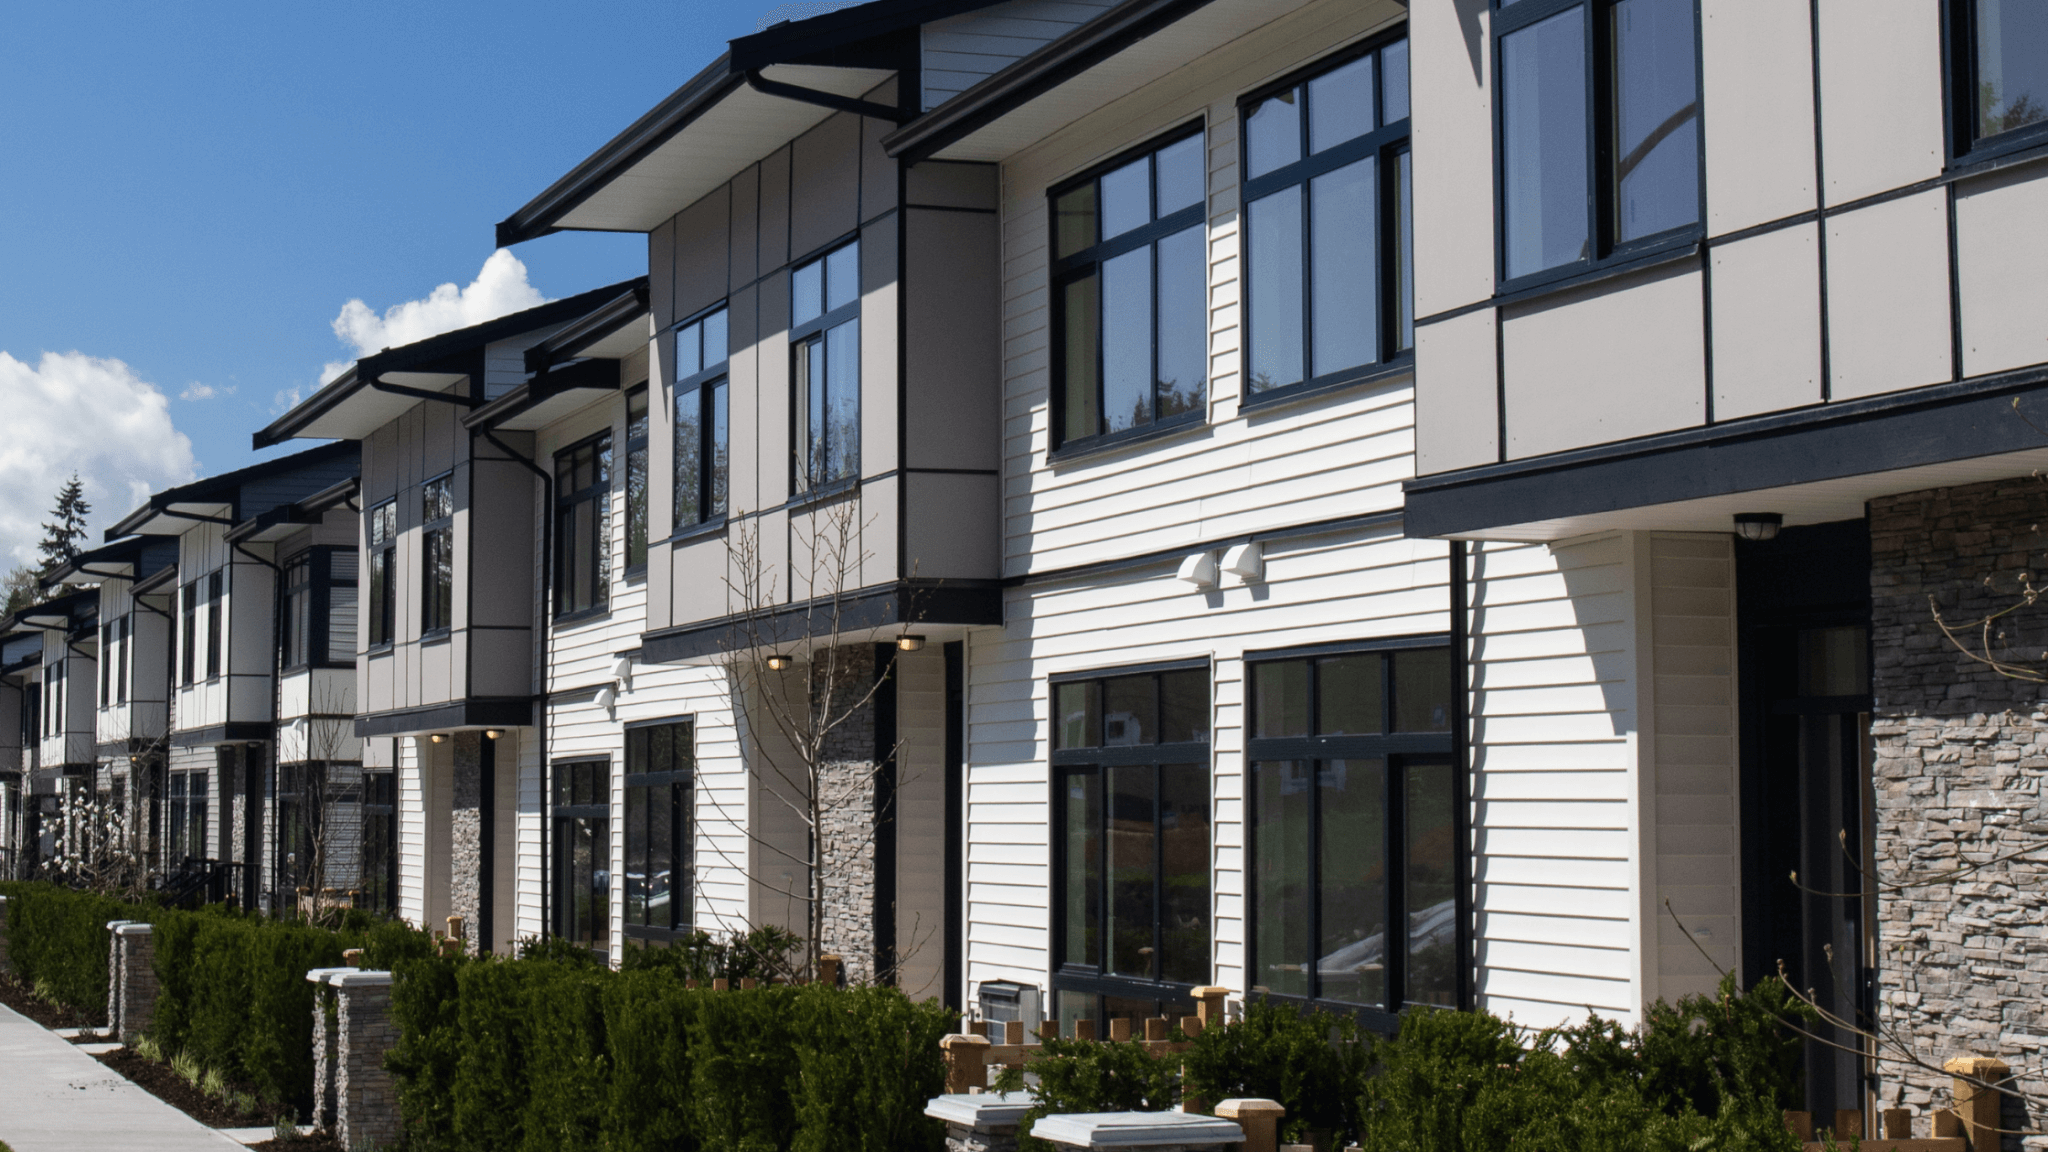 Do you need a building and pest inspection for a townouse - images of townhouses - gold coast brisbane and ballina townhouse for sale